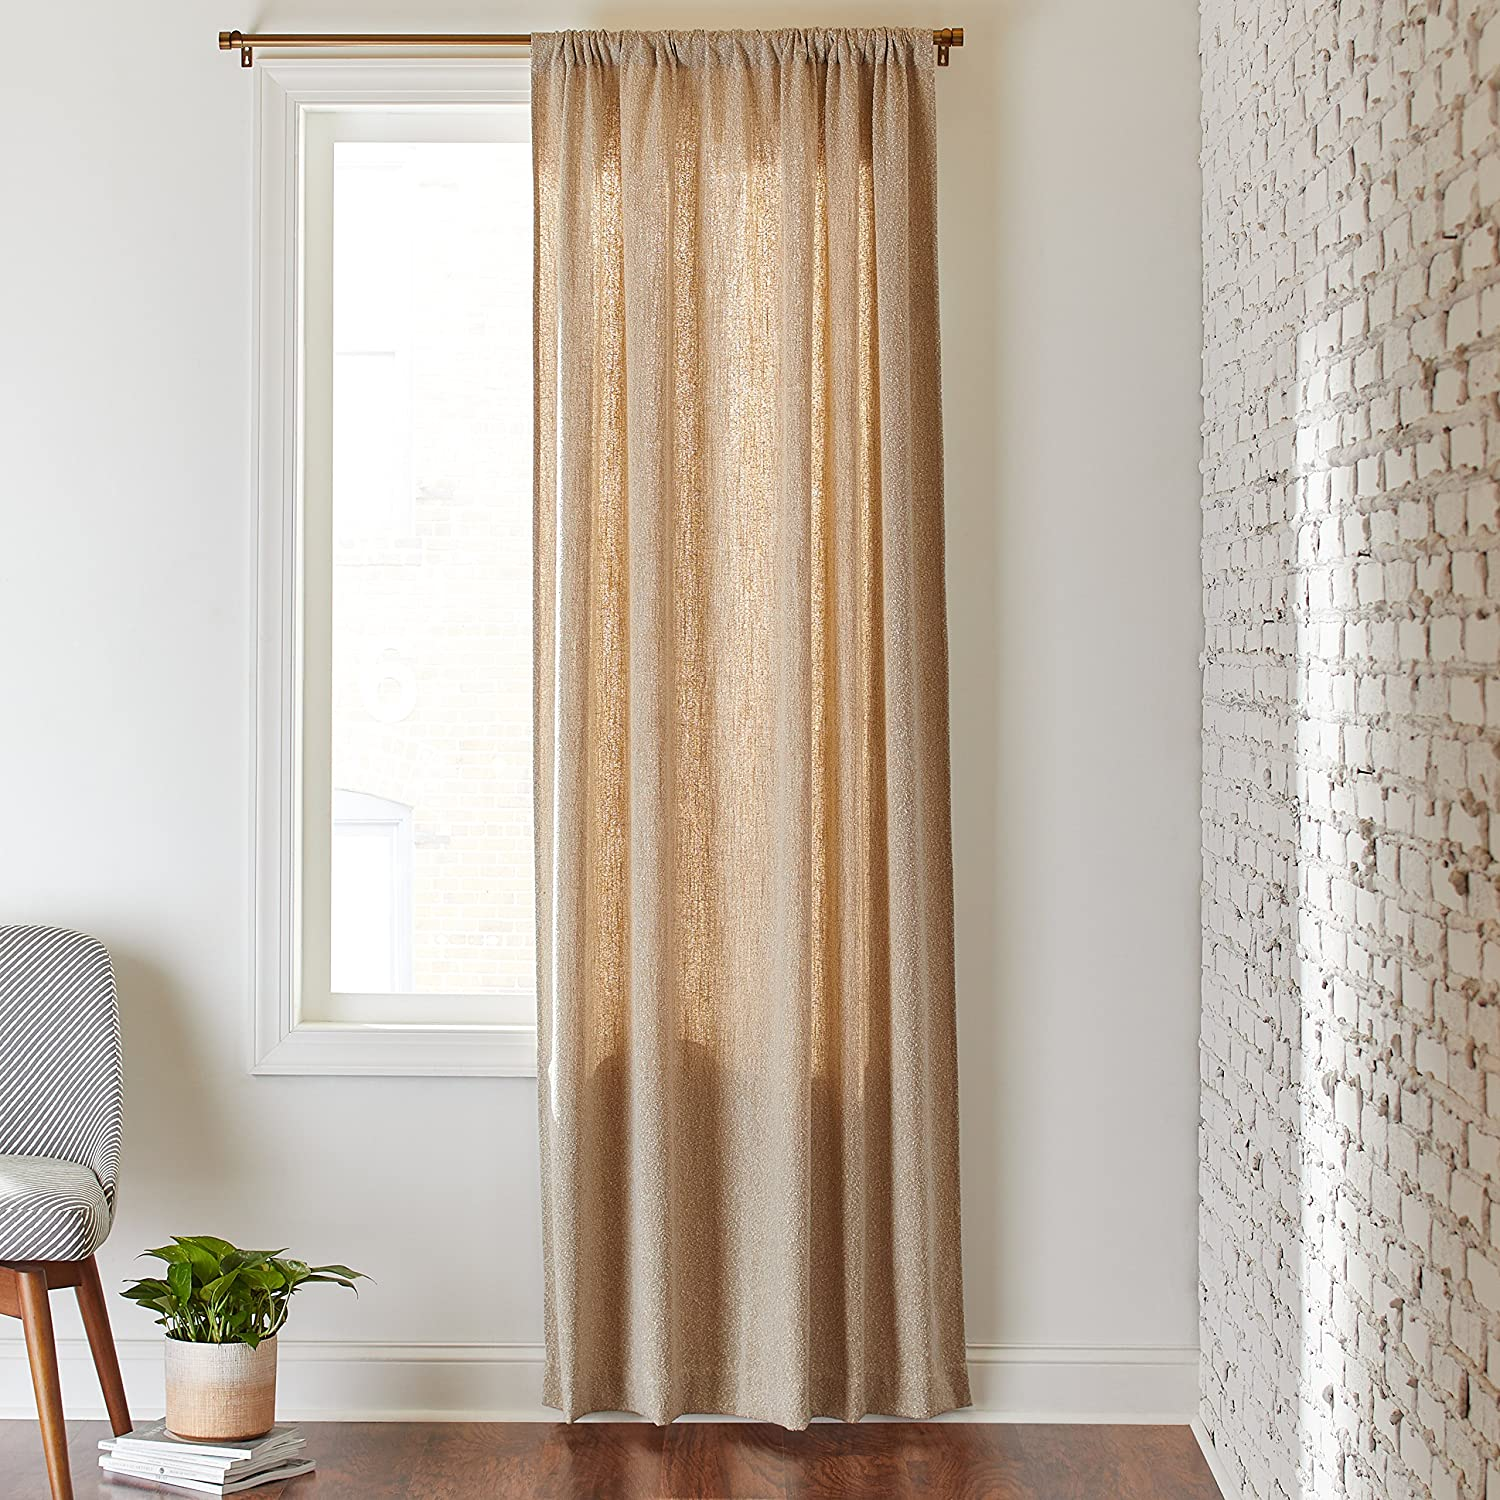 Rivet Mid-Century Modern Tweed Linen Blend Curtain, One Panel,  52  x 84 , Rod Pocket, Cream Pebble